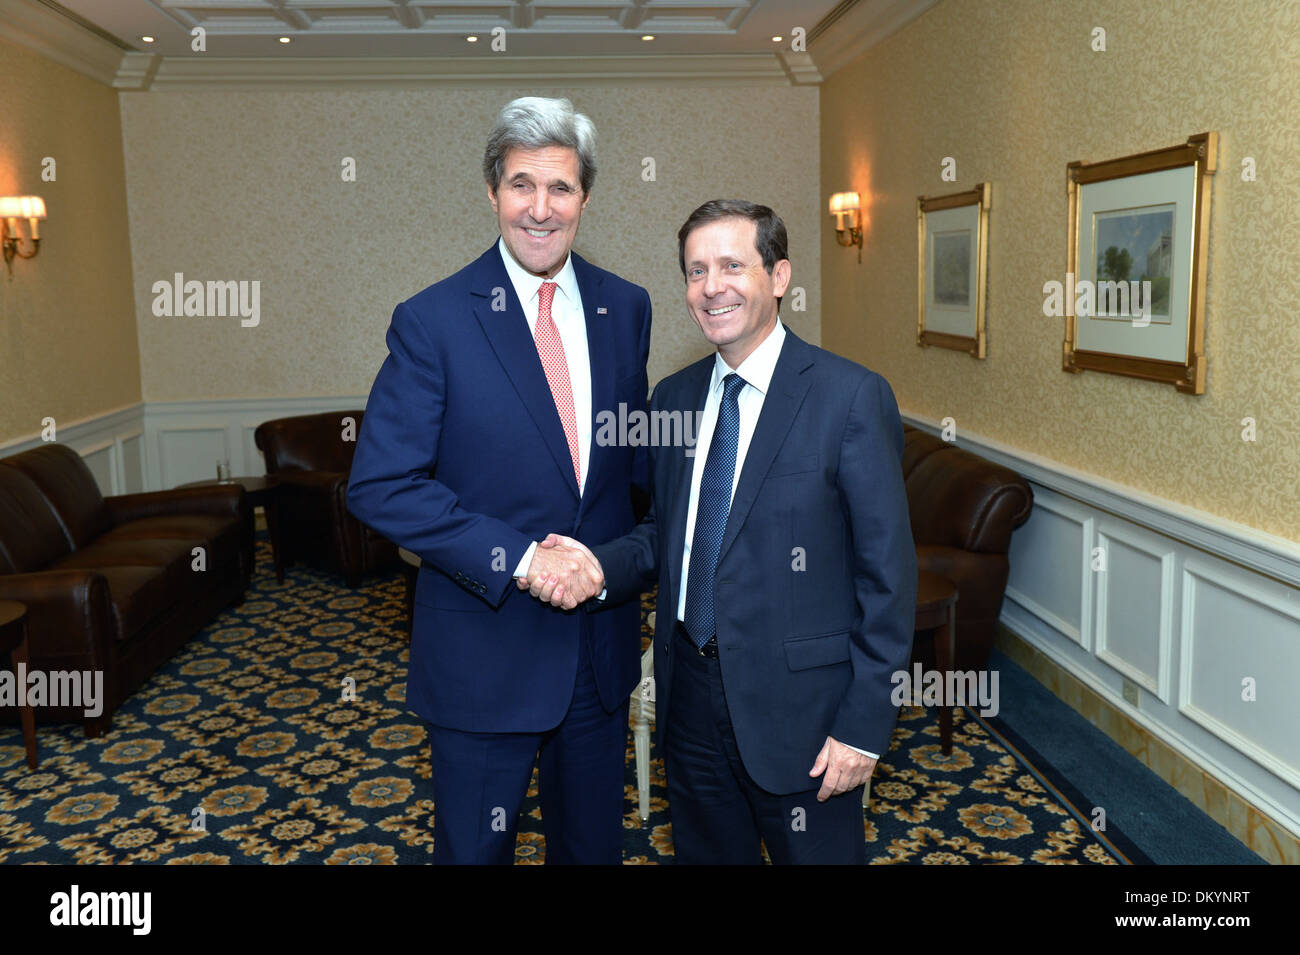 Secretary Kerry Meets With Israeli Opposition Leader Herzog - Stock Image